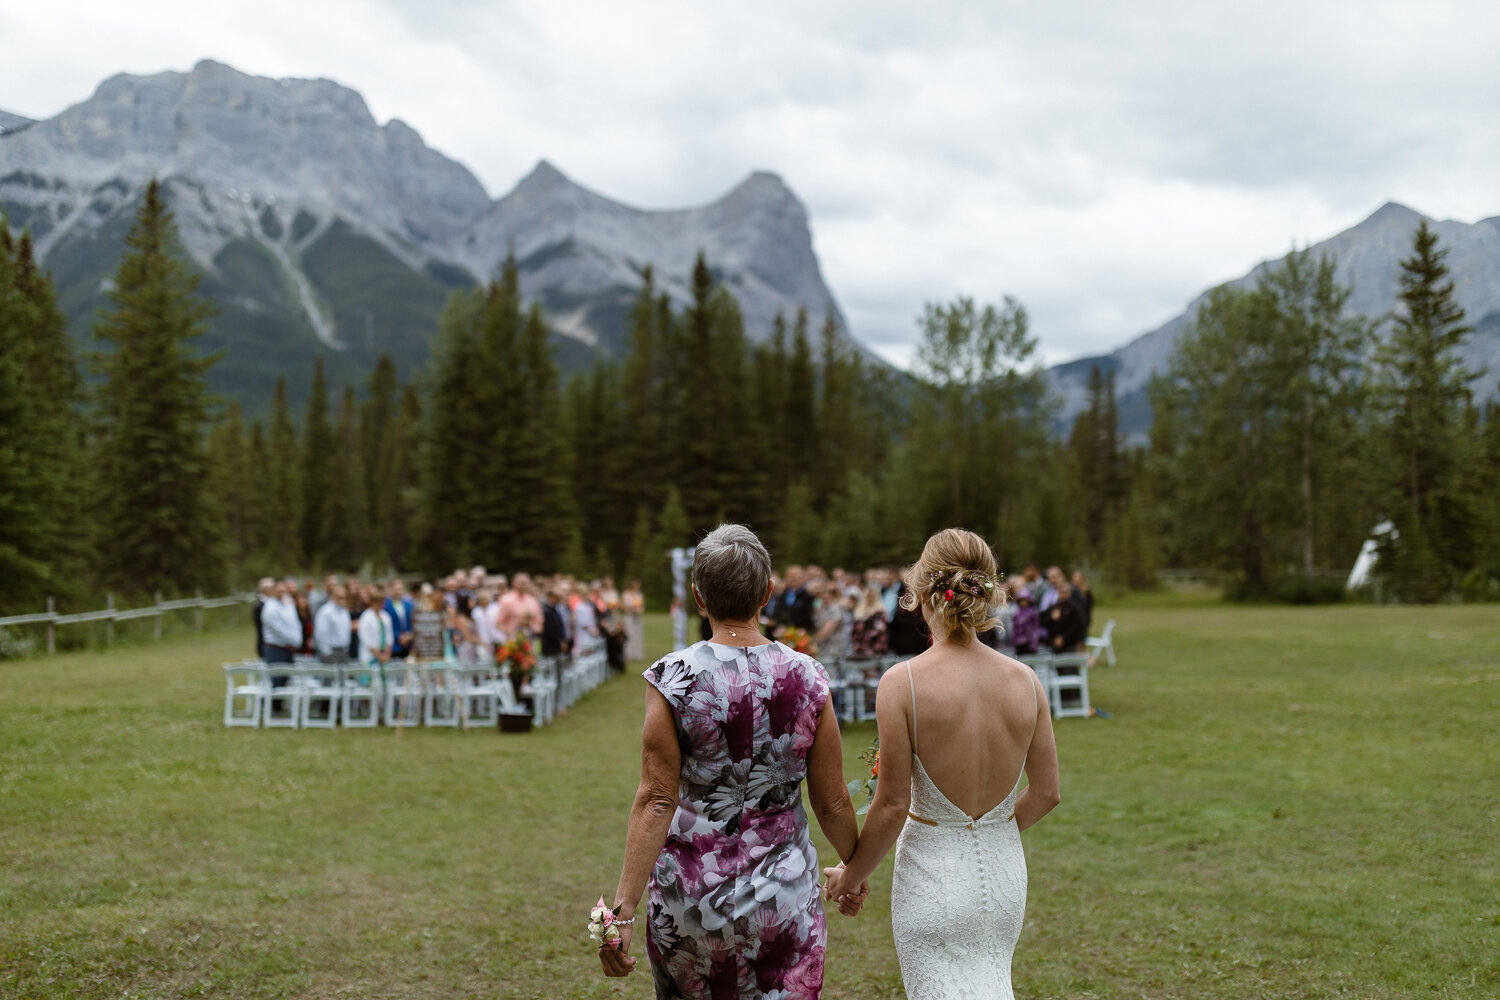 54-Canmore-Alberta-Real-Wedding-Best-Wedding-Photographers-76.JPG